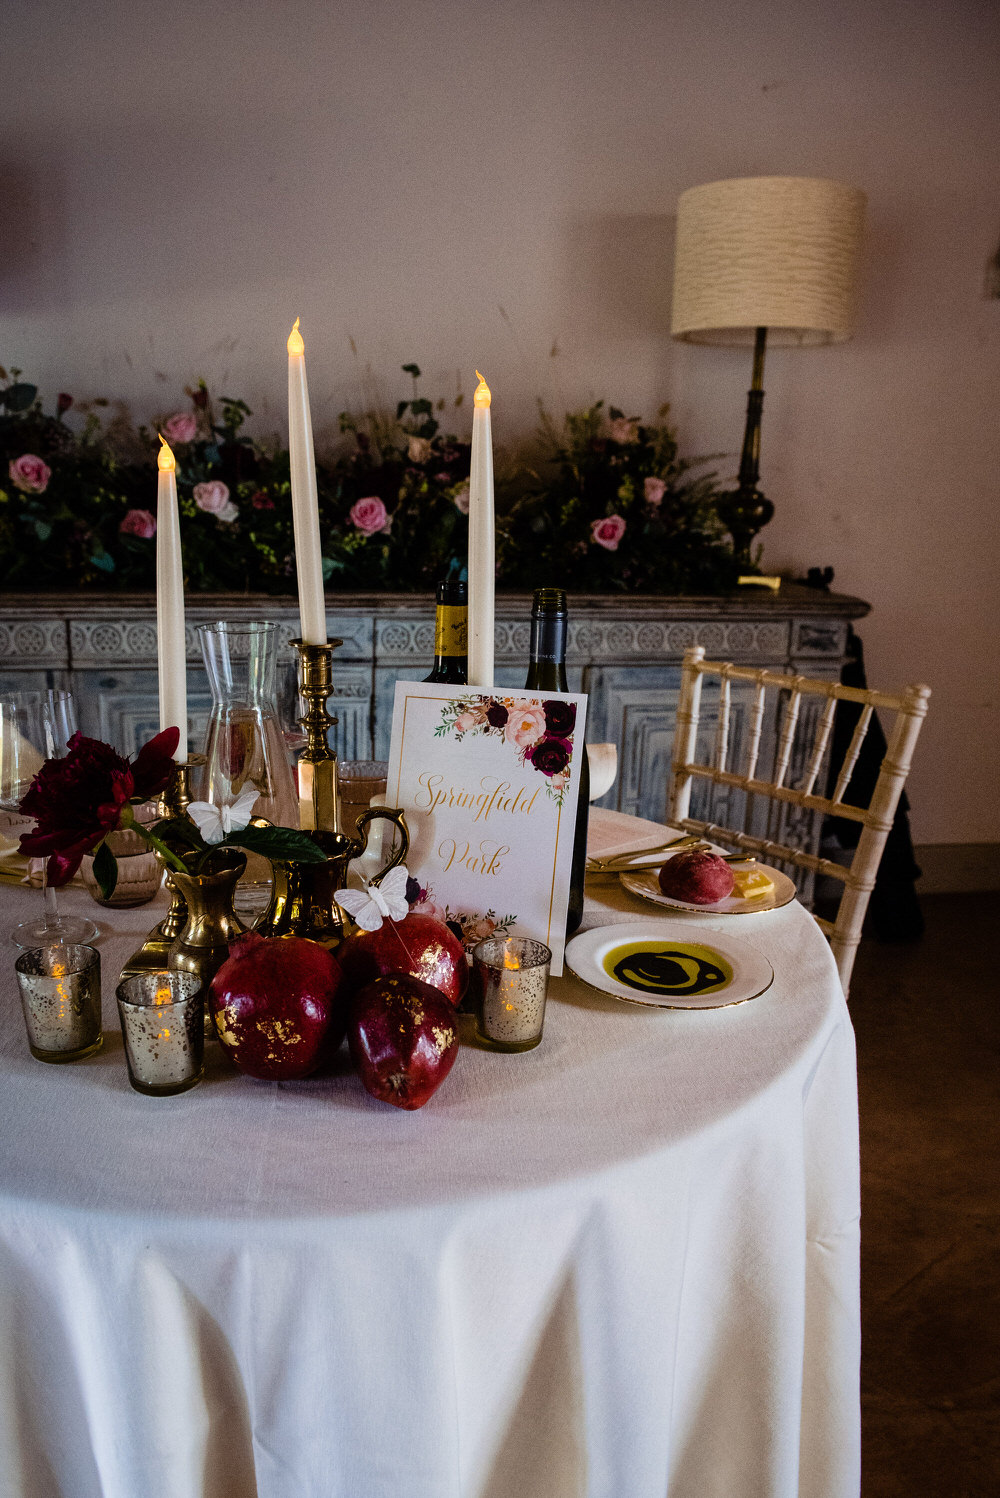 Sweetheart Table Decor Flowers Candles Fruit Gold West Lexham Wedding James Powell Photography